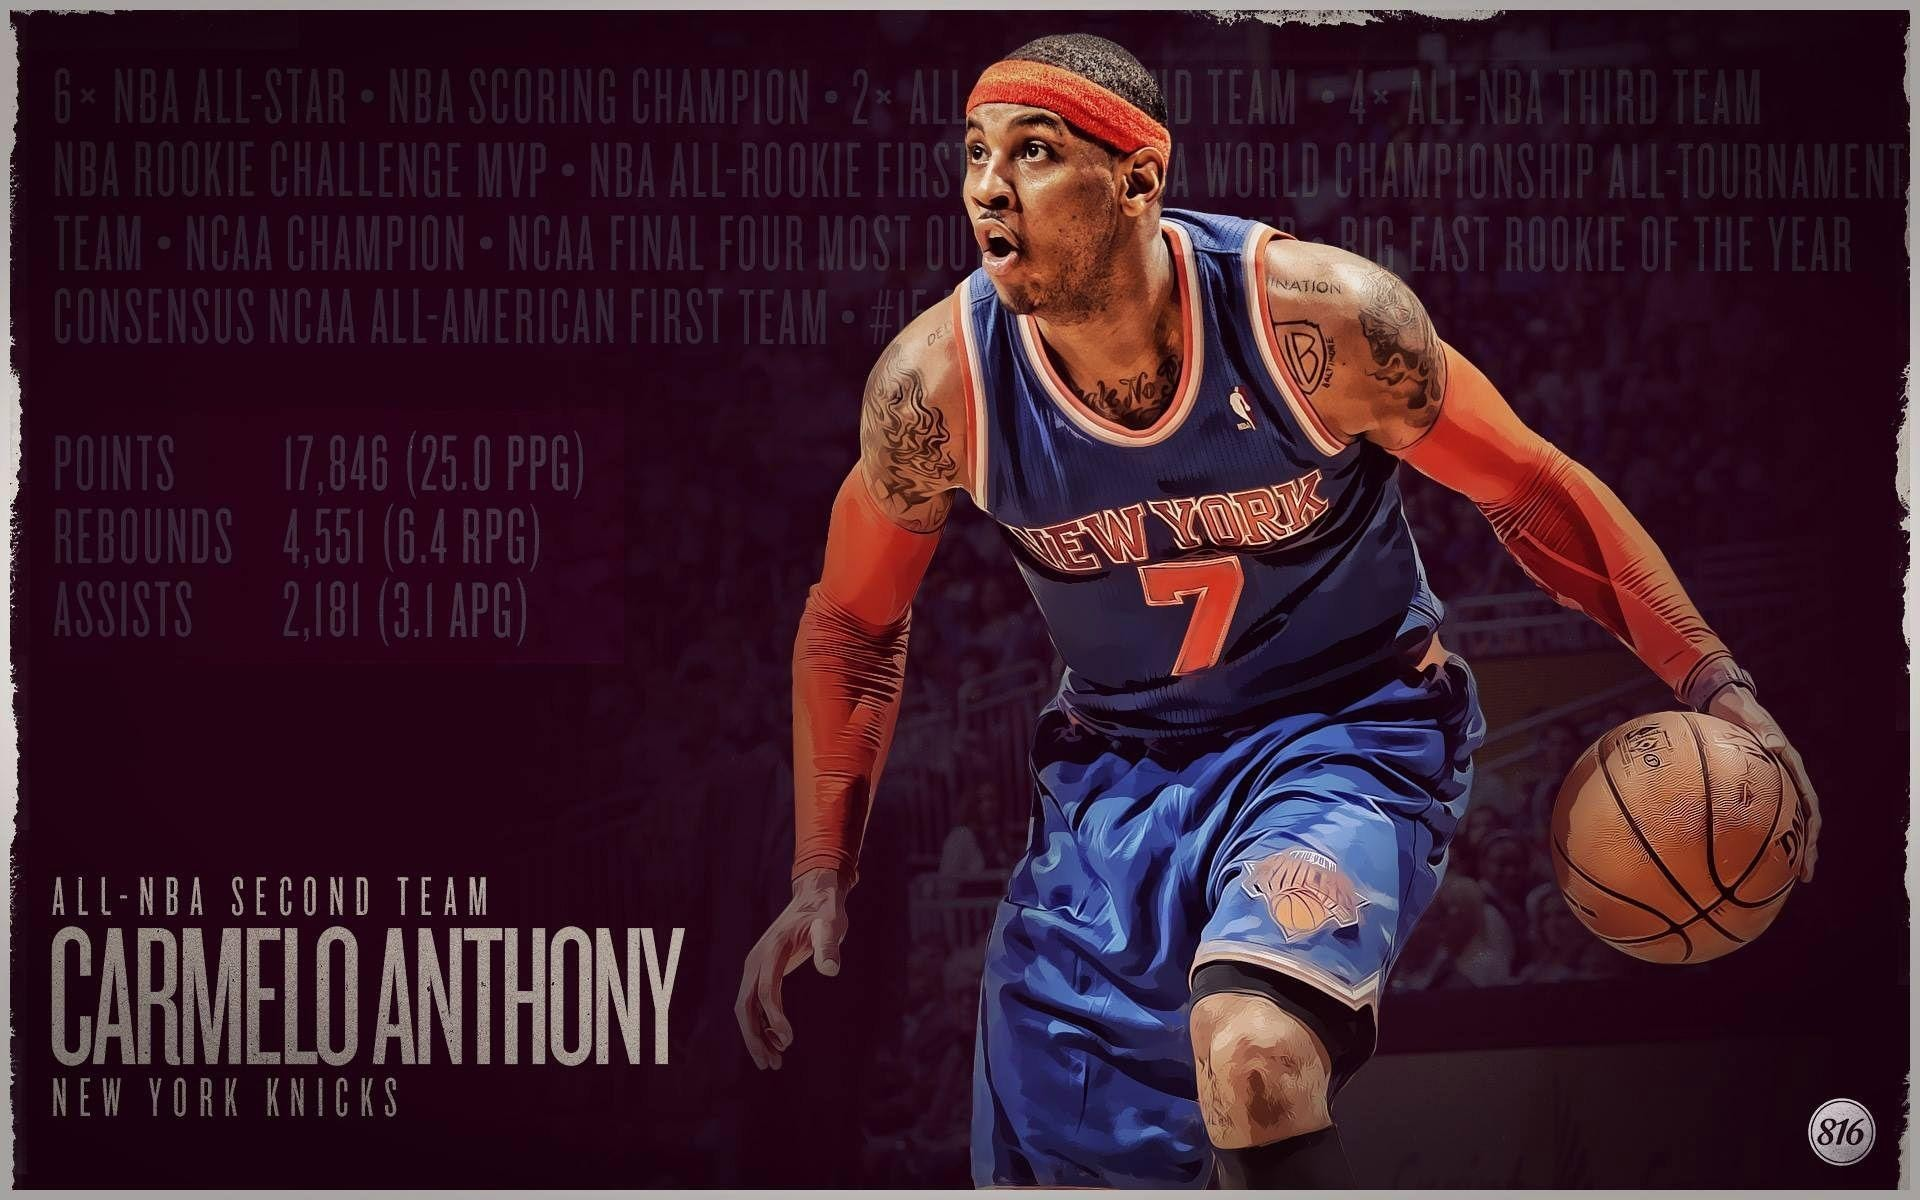 1920x1200 Rebound Love iPhone 6 Wallpaper Unique Carmelo Anthony Wallpapers Wallpaper  Cave